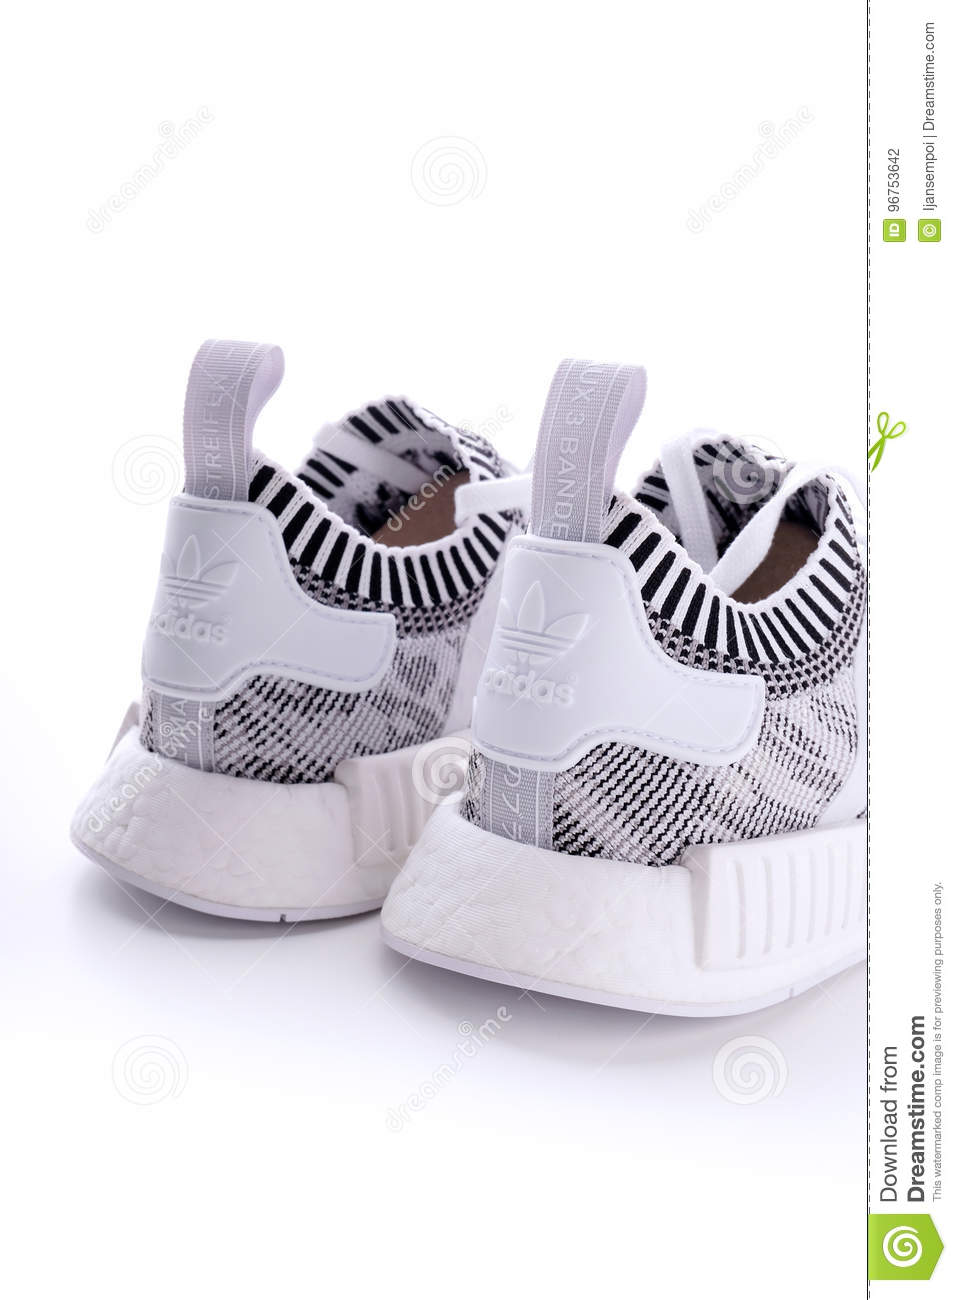 Get Nice NMD R1 Three Stripes Black White Sneakers with